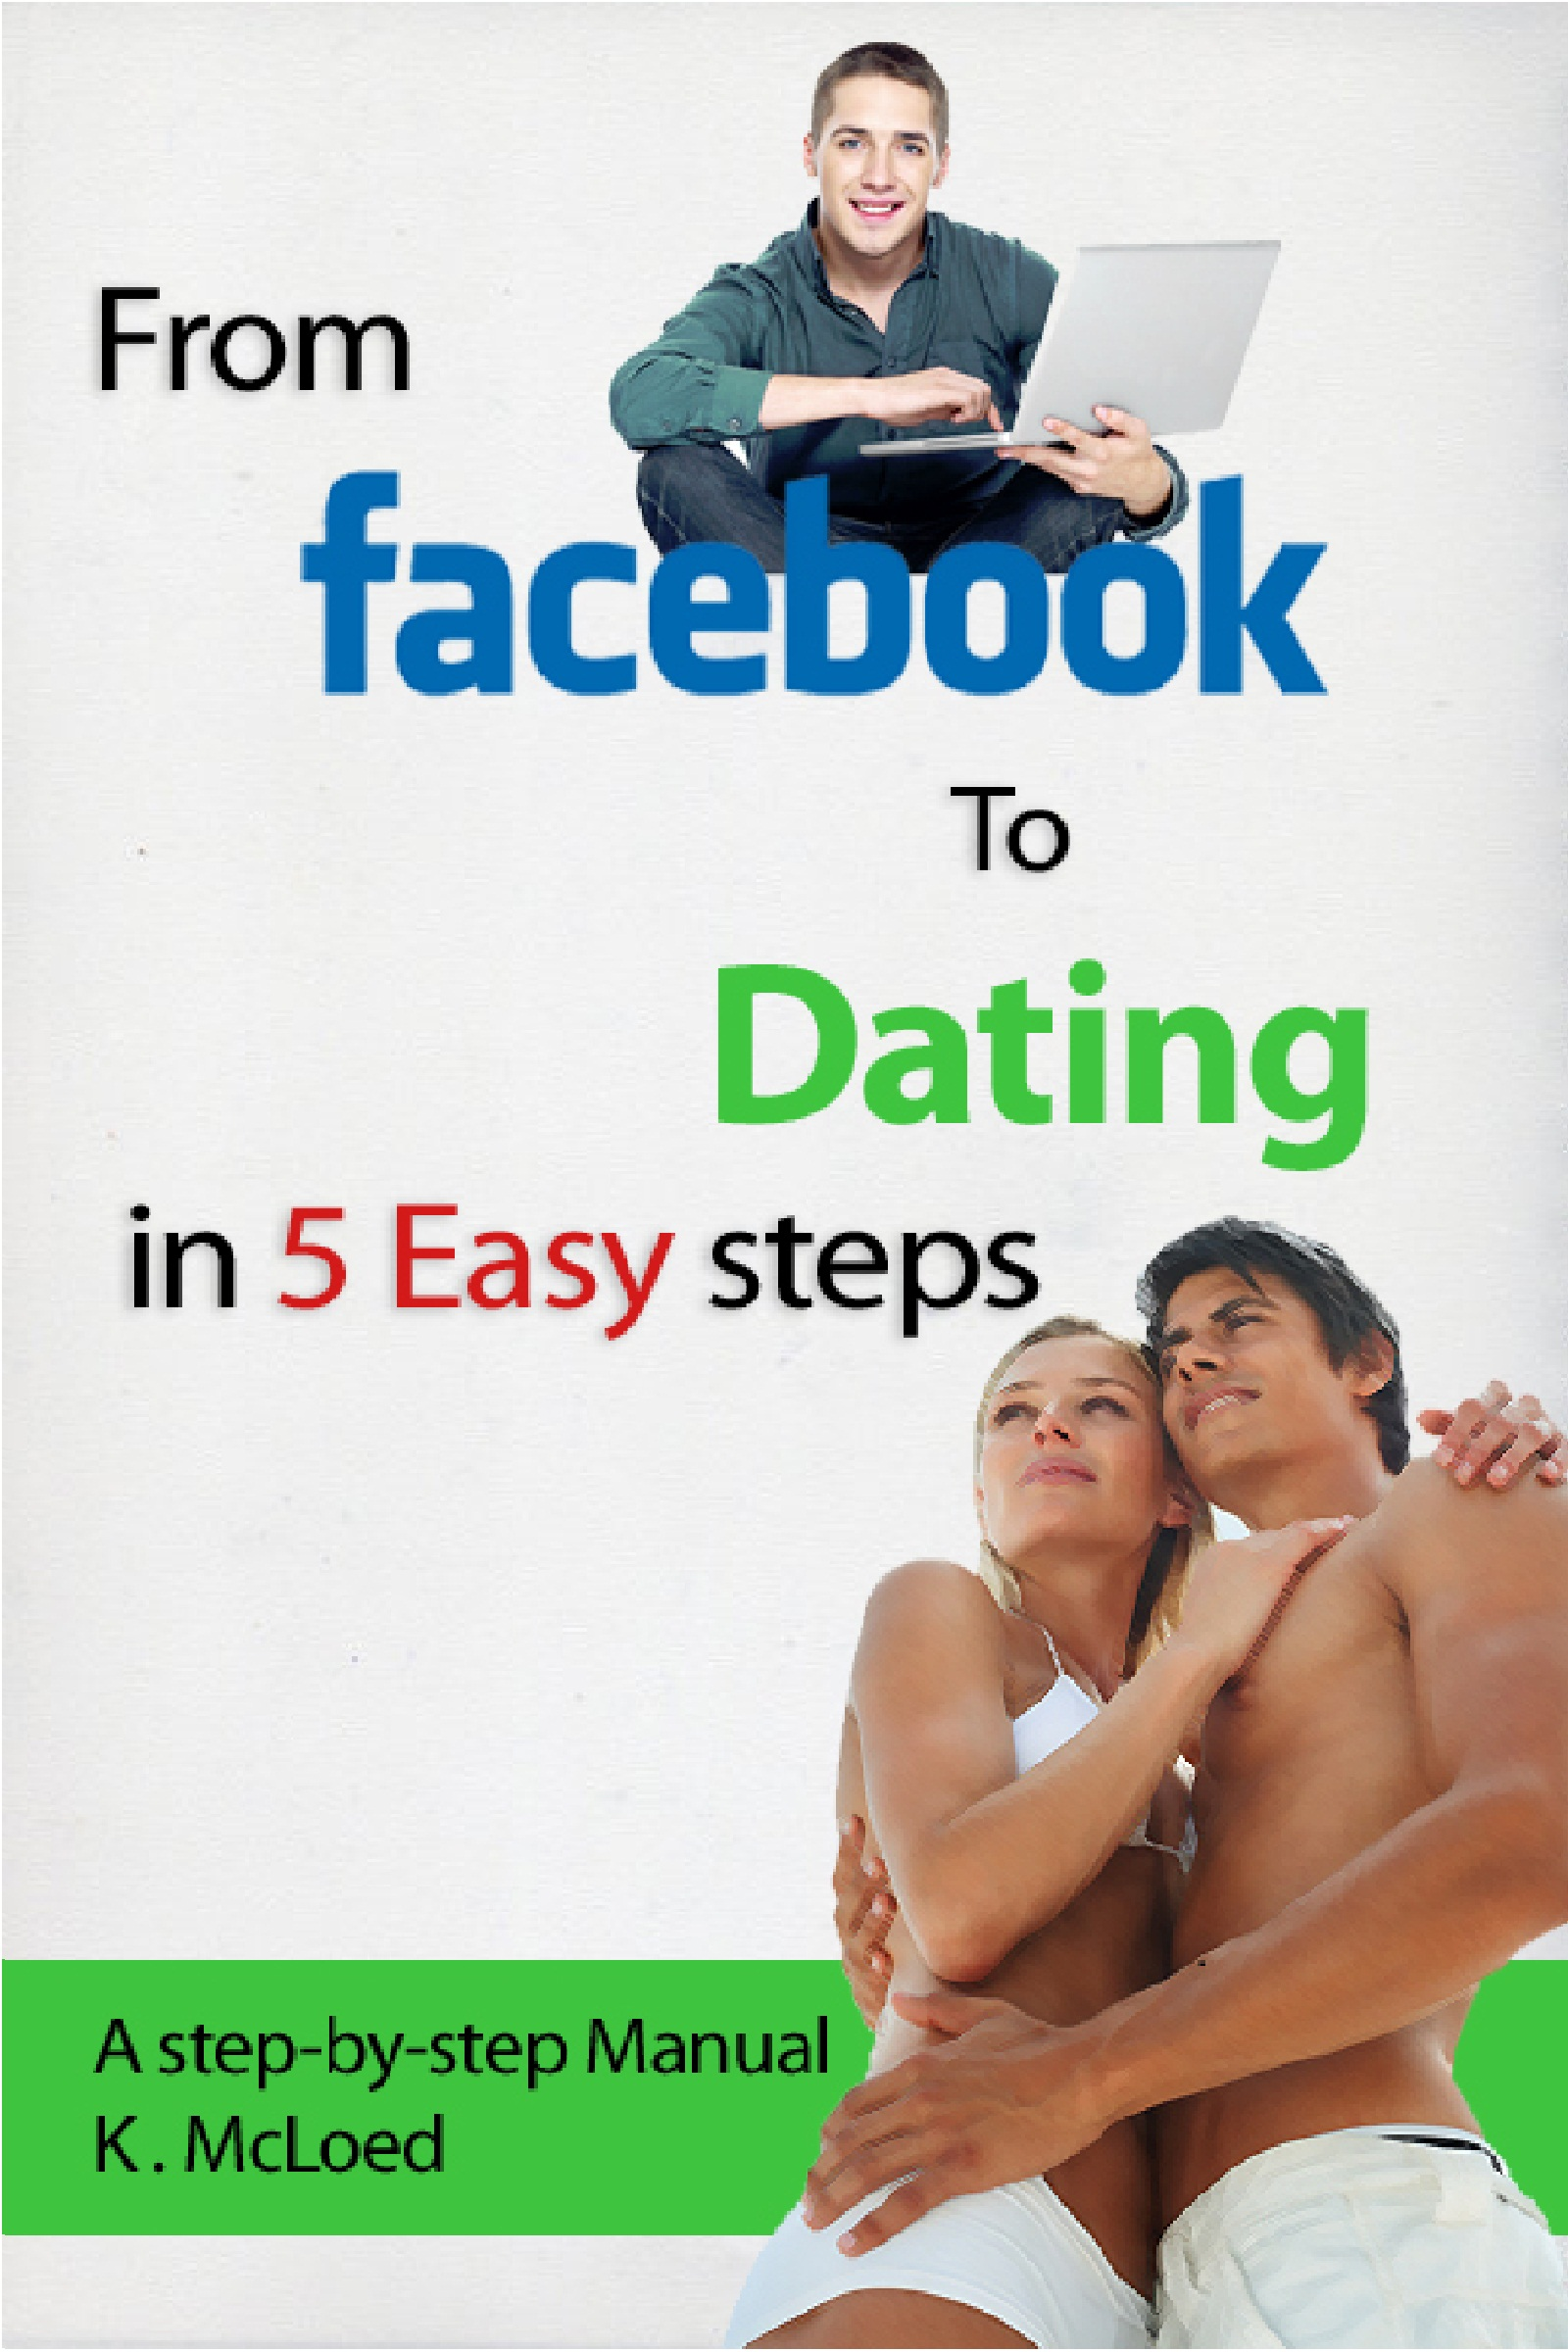 Adult dating.com easy